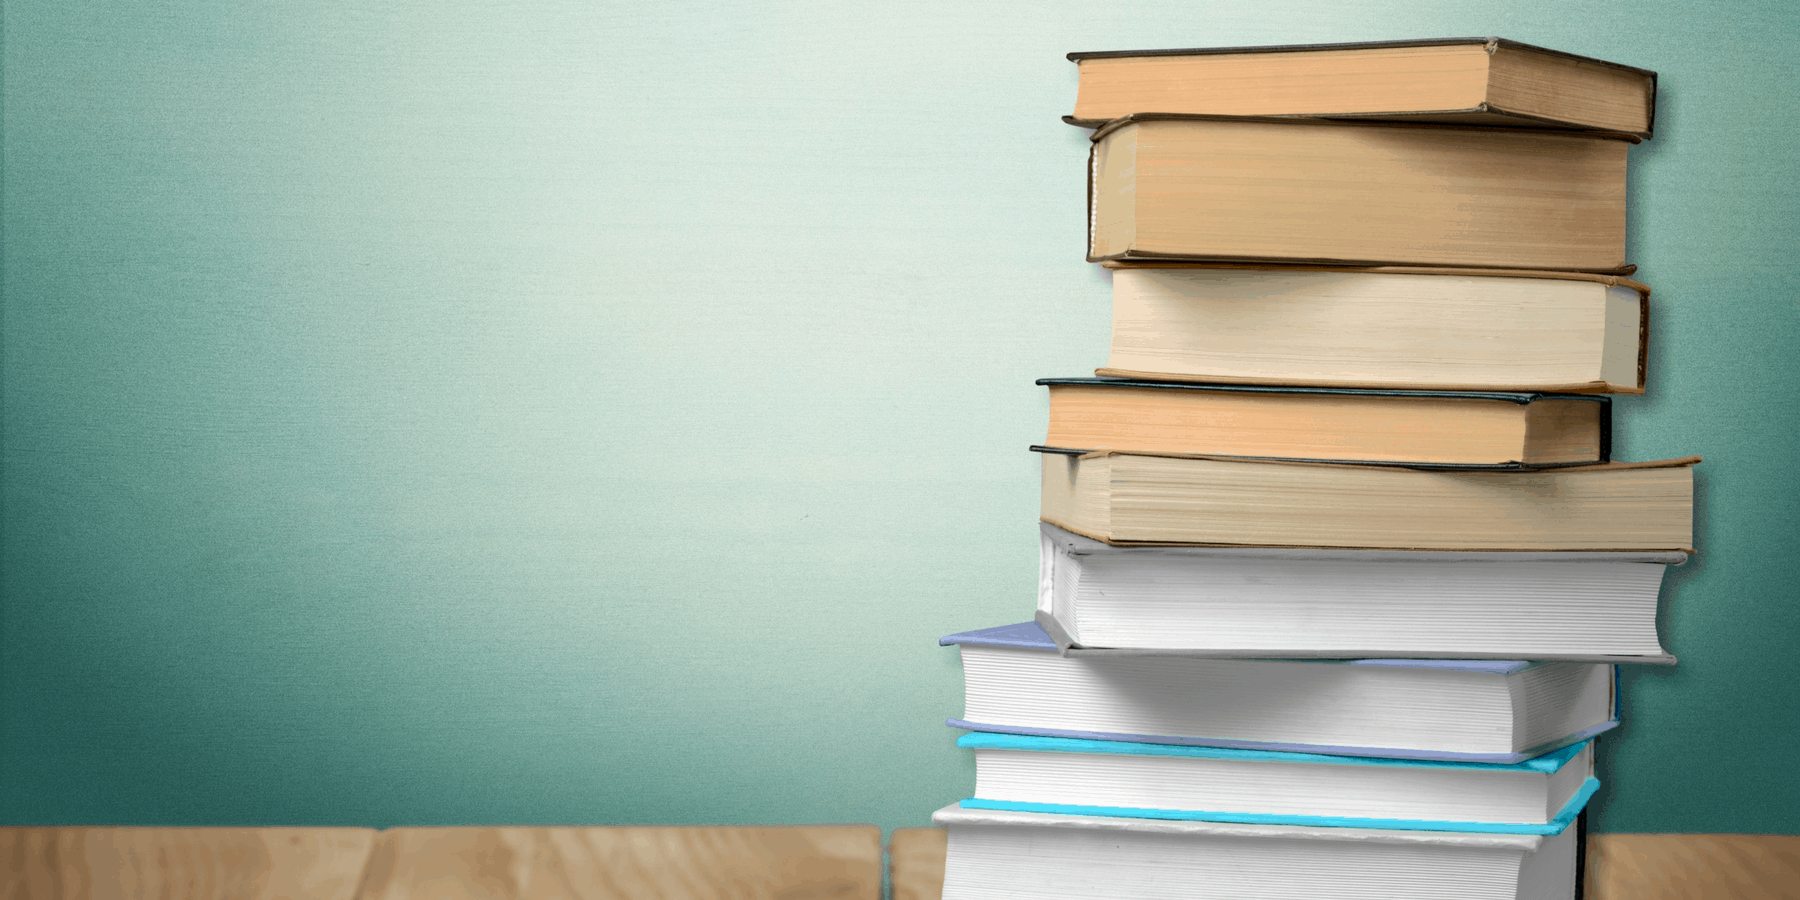 Teaching Spanish Without A Textbook: Why I Threw Mine Out